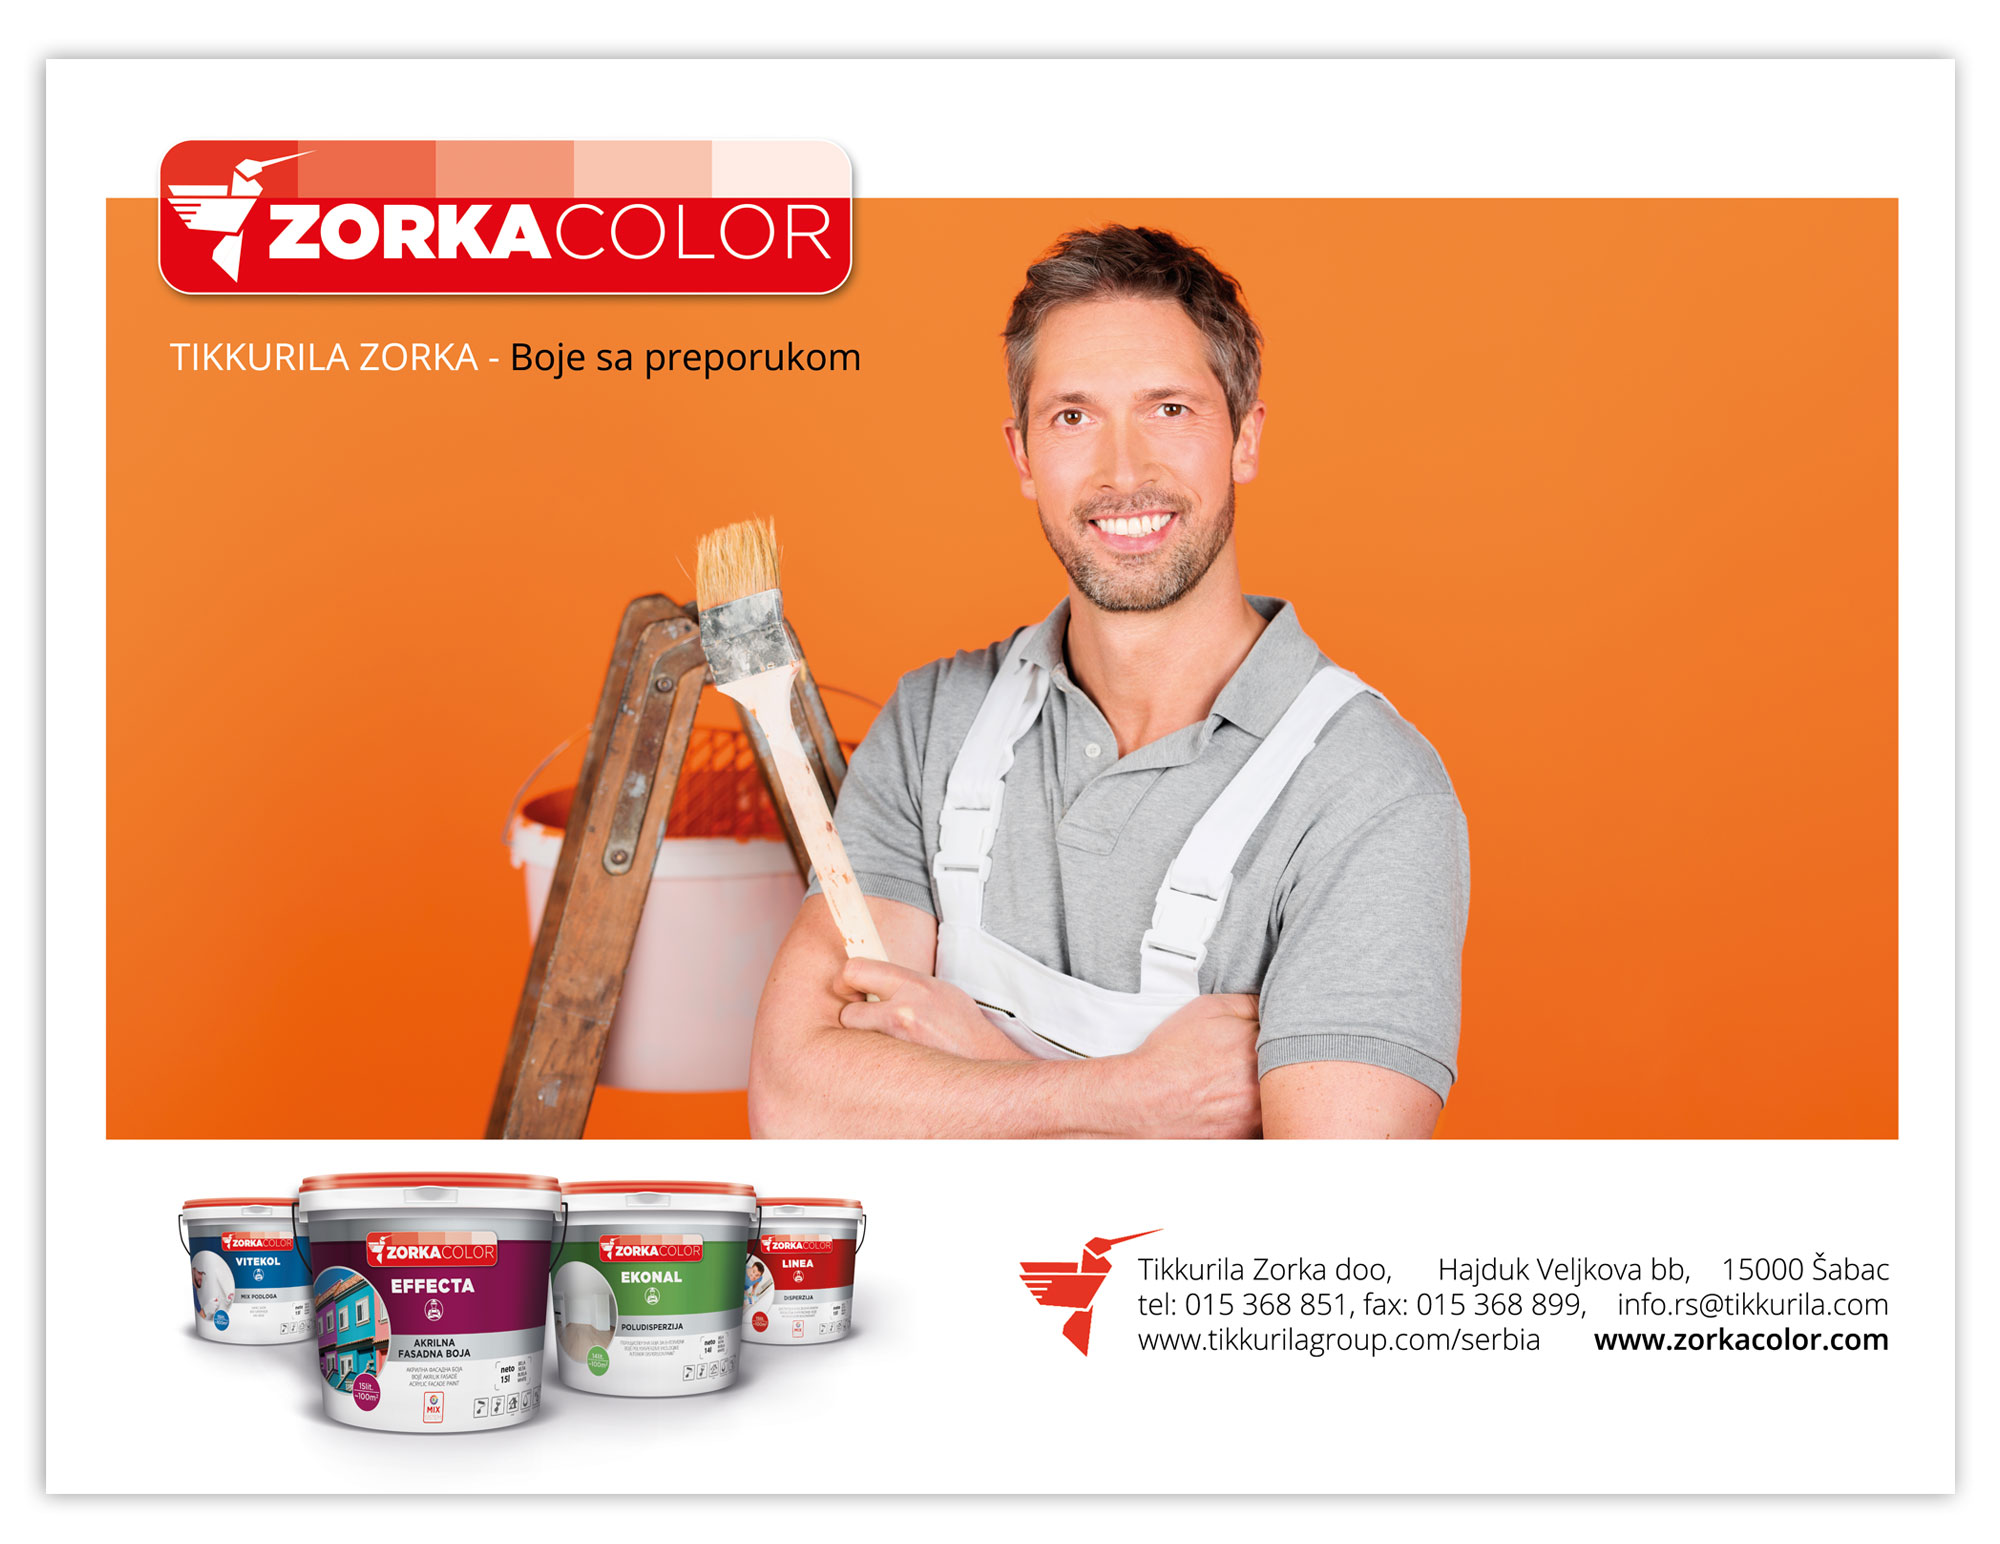 zorka color poster 2